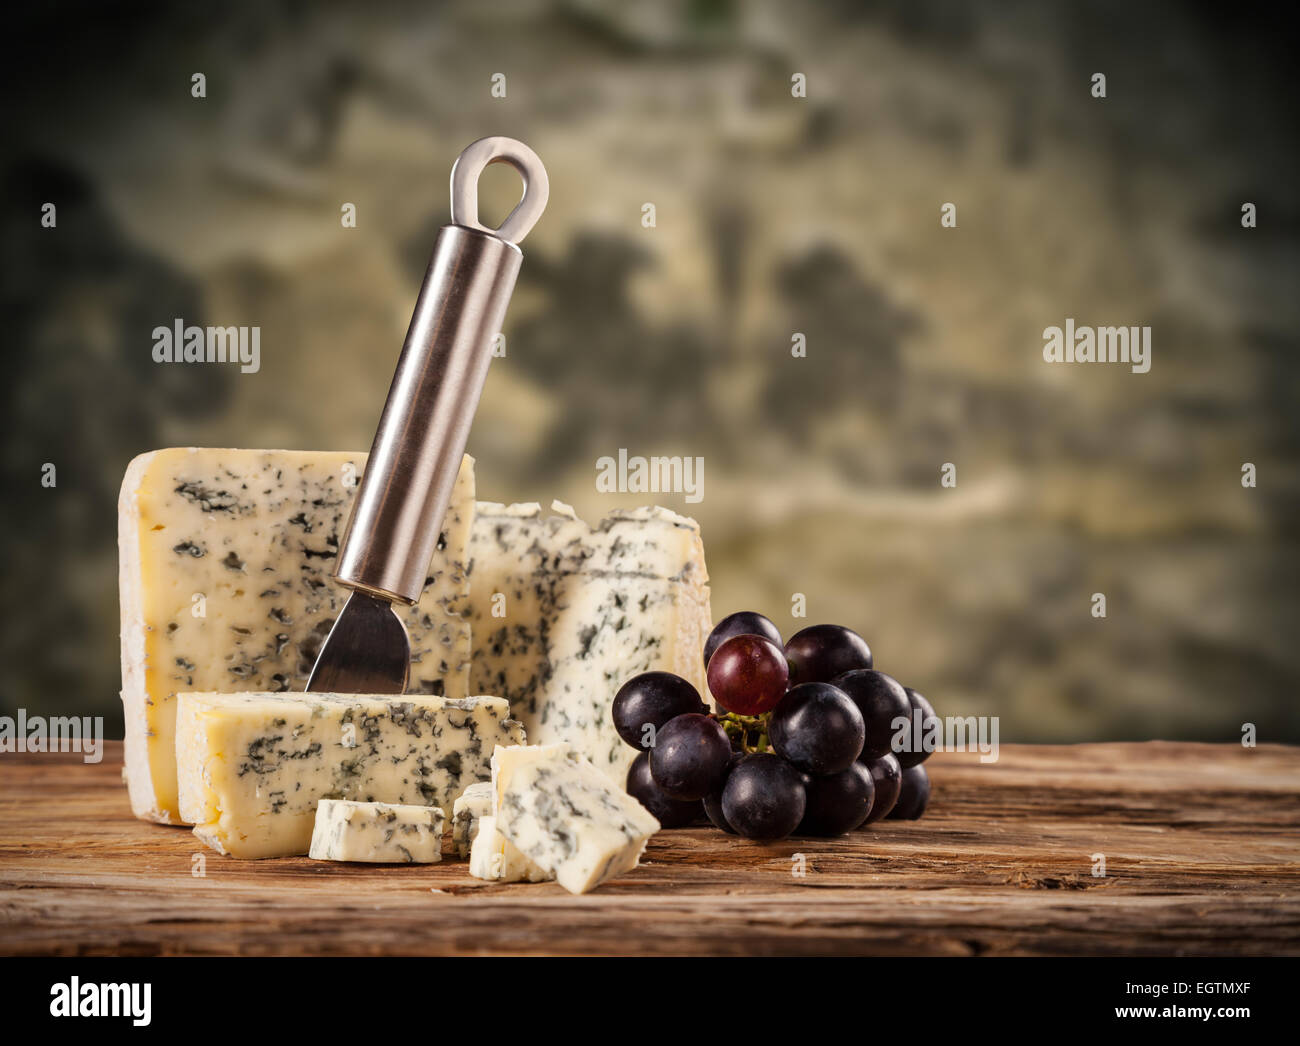 Still life of blue cheese served on wood in cellar - Stock Image